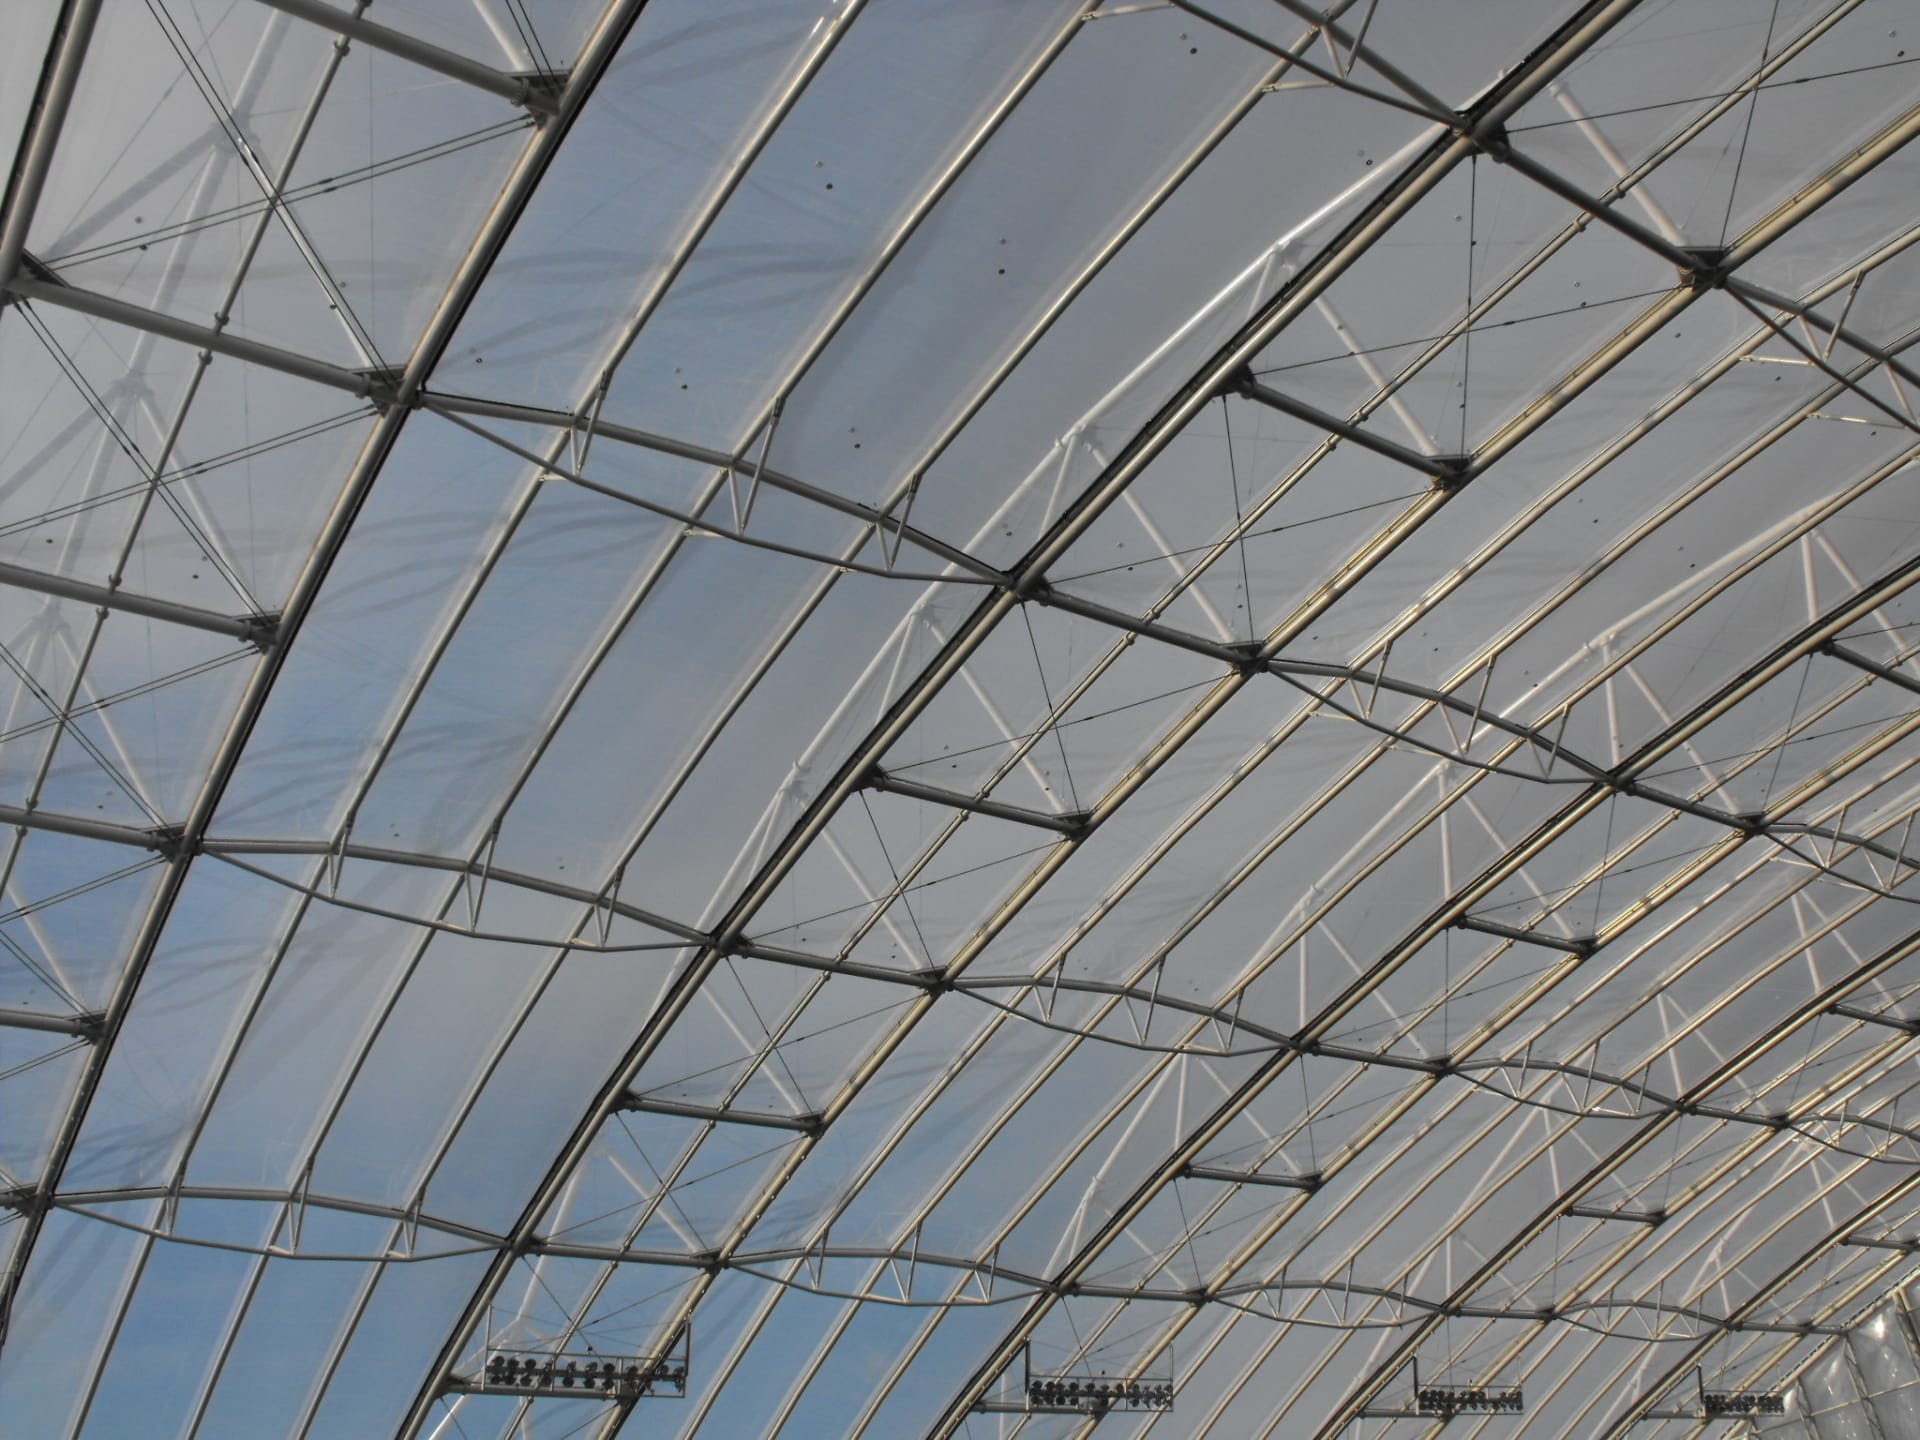 At Forsyth Barr Stadium, the Texlon® ETFE system completely envelopes the building with a lightweight structure.